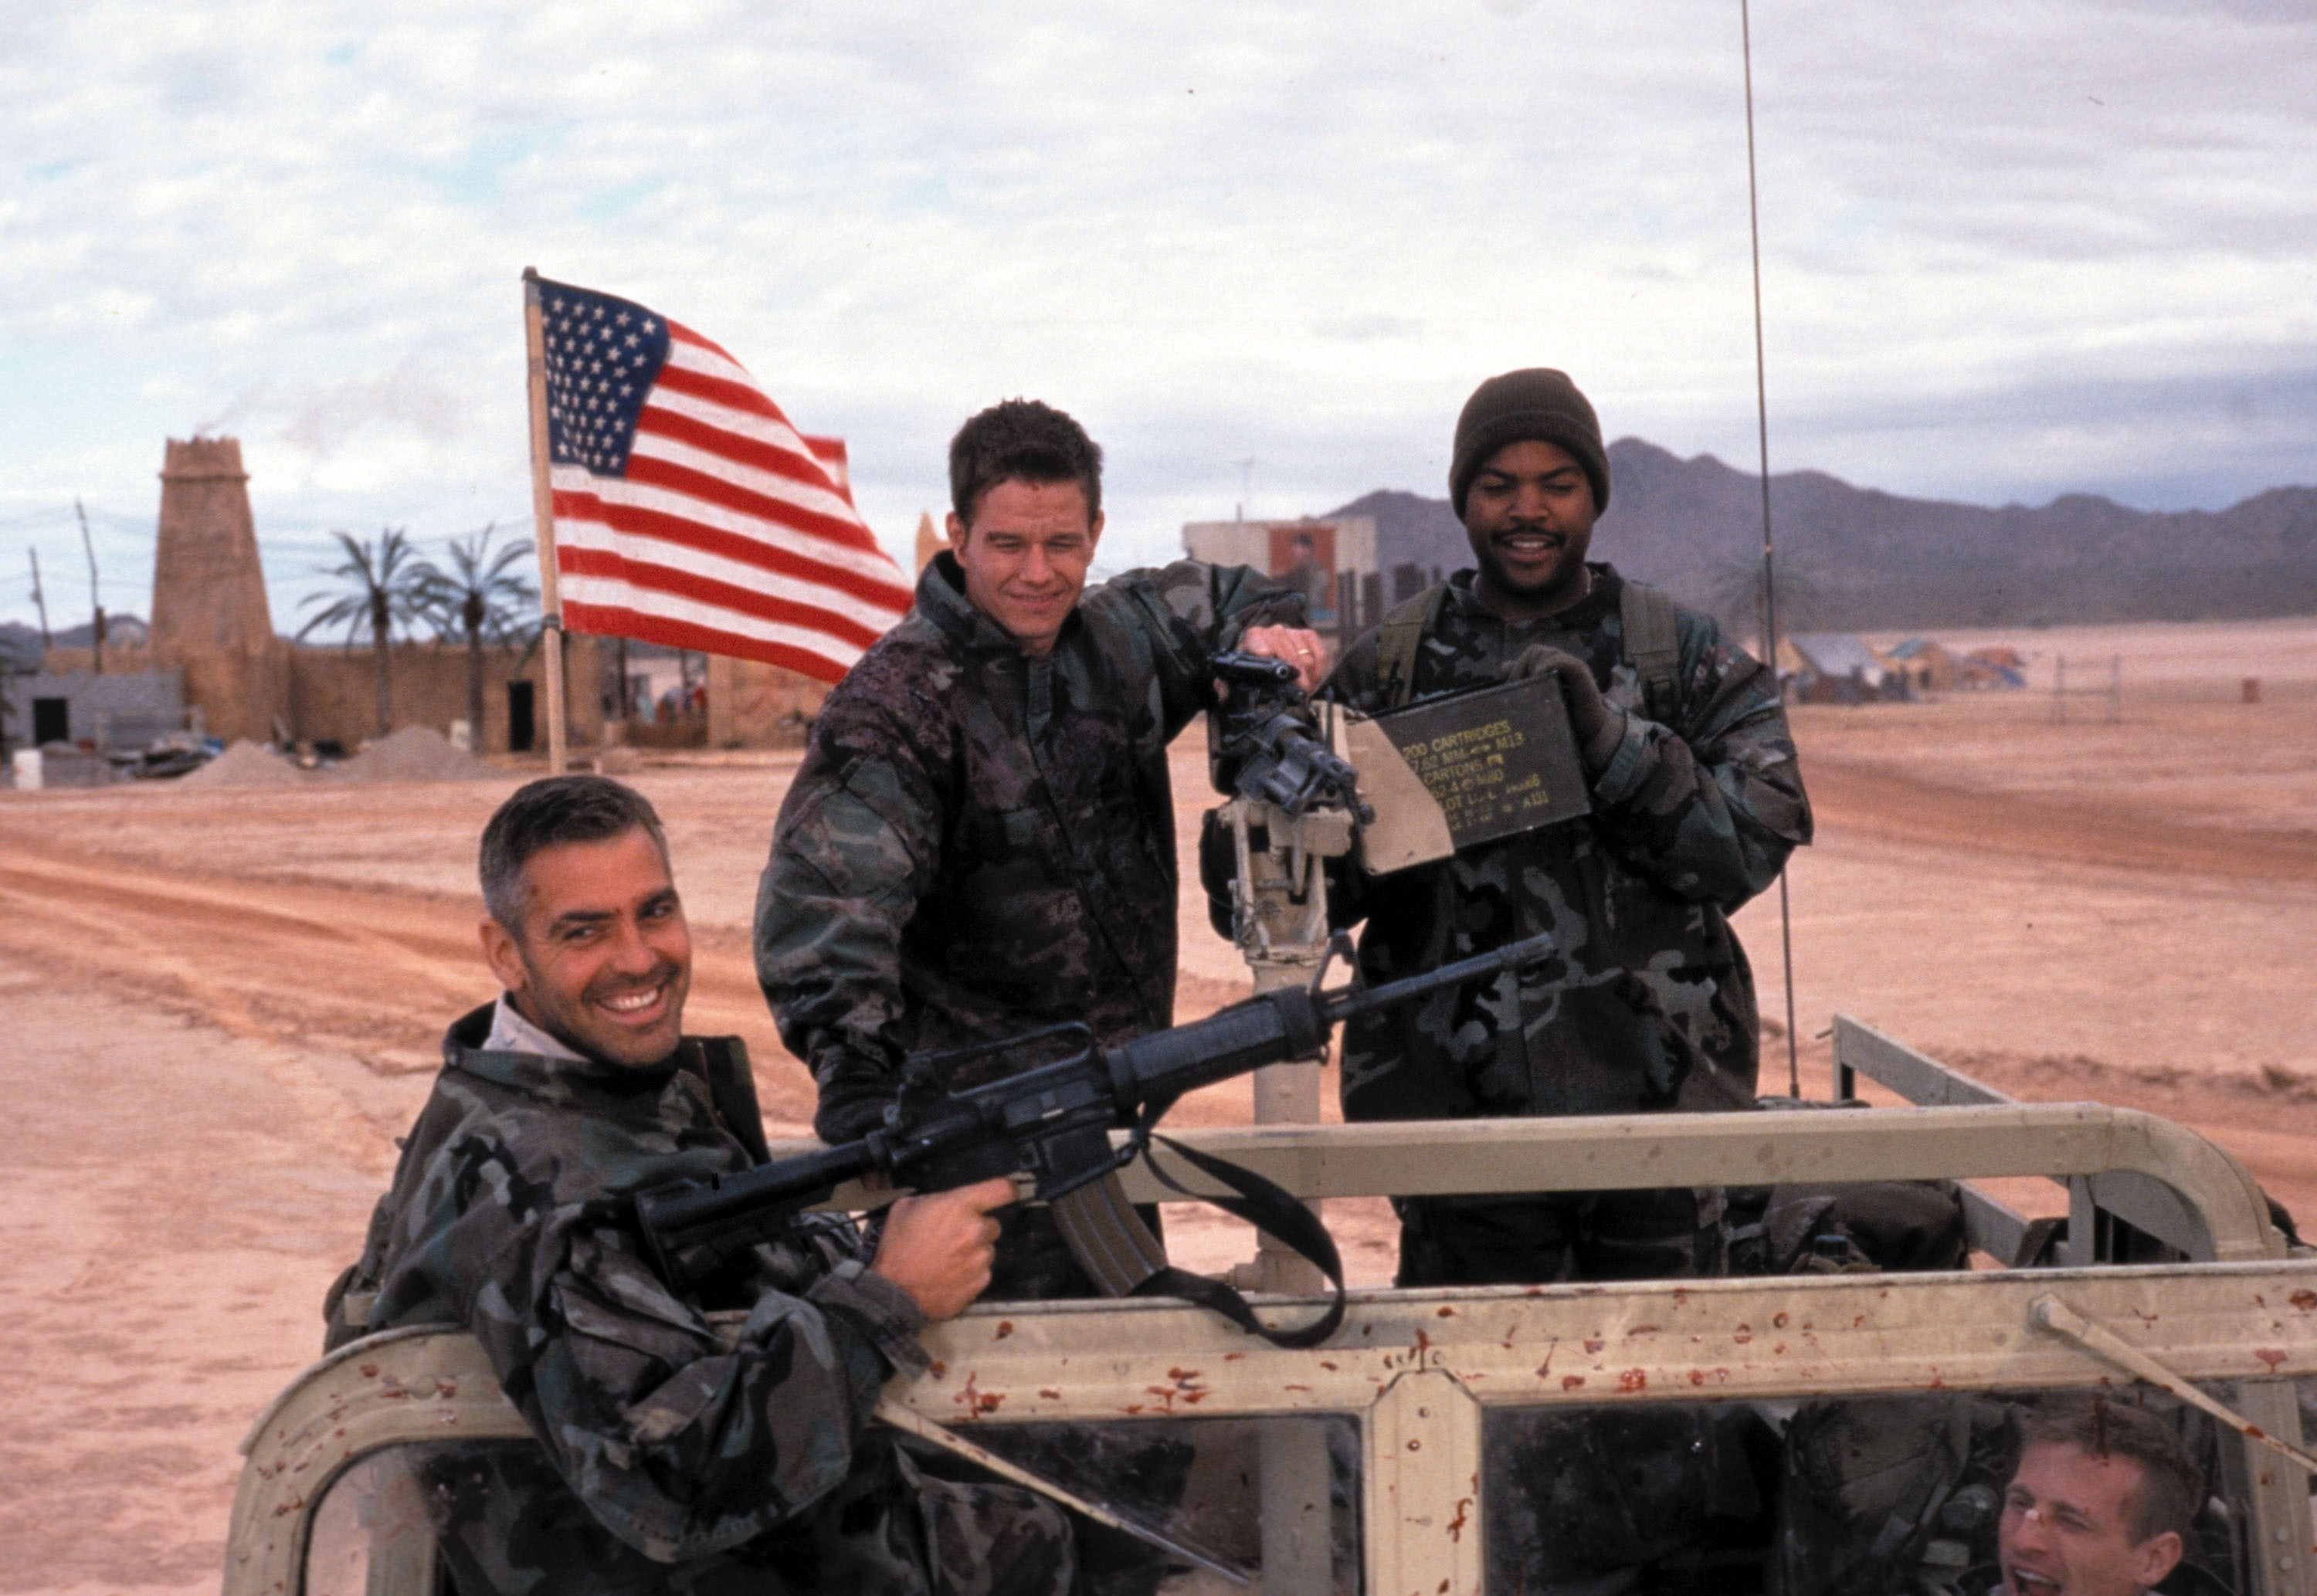 """George Clooney, Mark Wahlberg and Ice Cube in """"Three Kings"""" in 1999."""